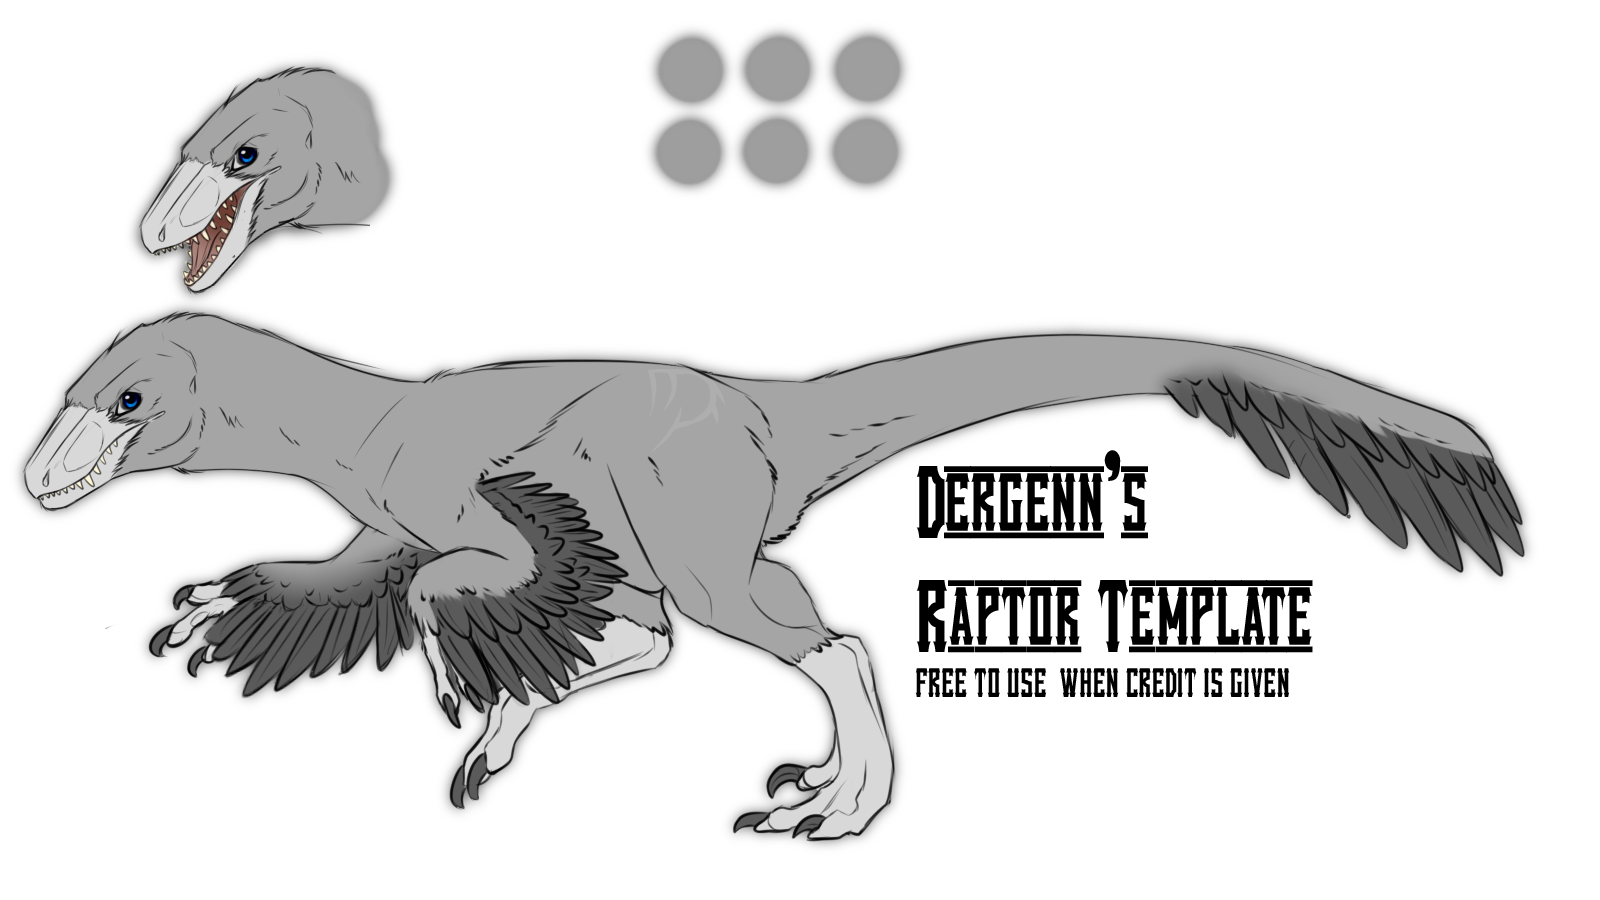 dergen s 2016 raptor template f2u by dergenn on deviantart dergen s 2016 raptor template f2u by